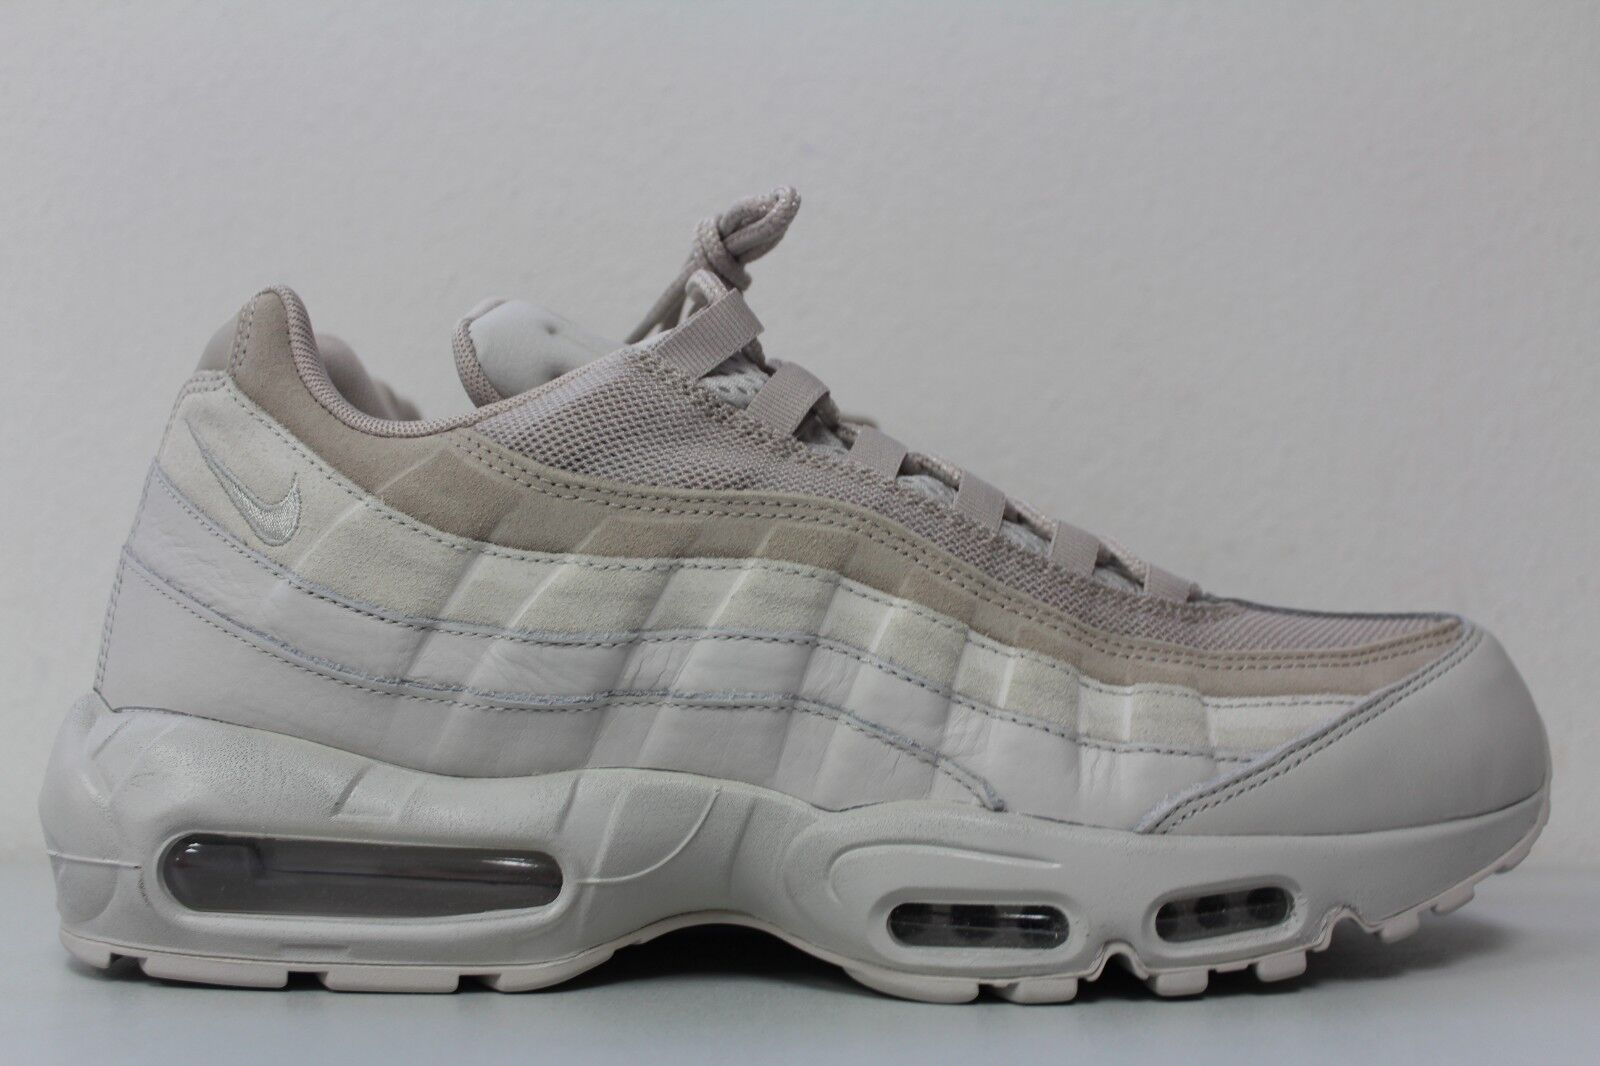 Nike Mens Air 95 PRM Size 13 Light Premium Bone String Khaki Tonal Premium Light 538416 011 458415